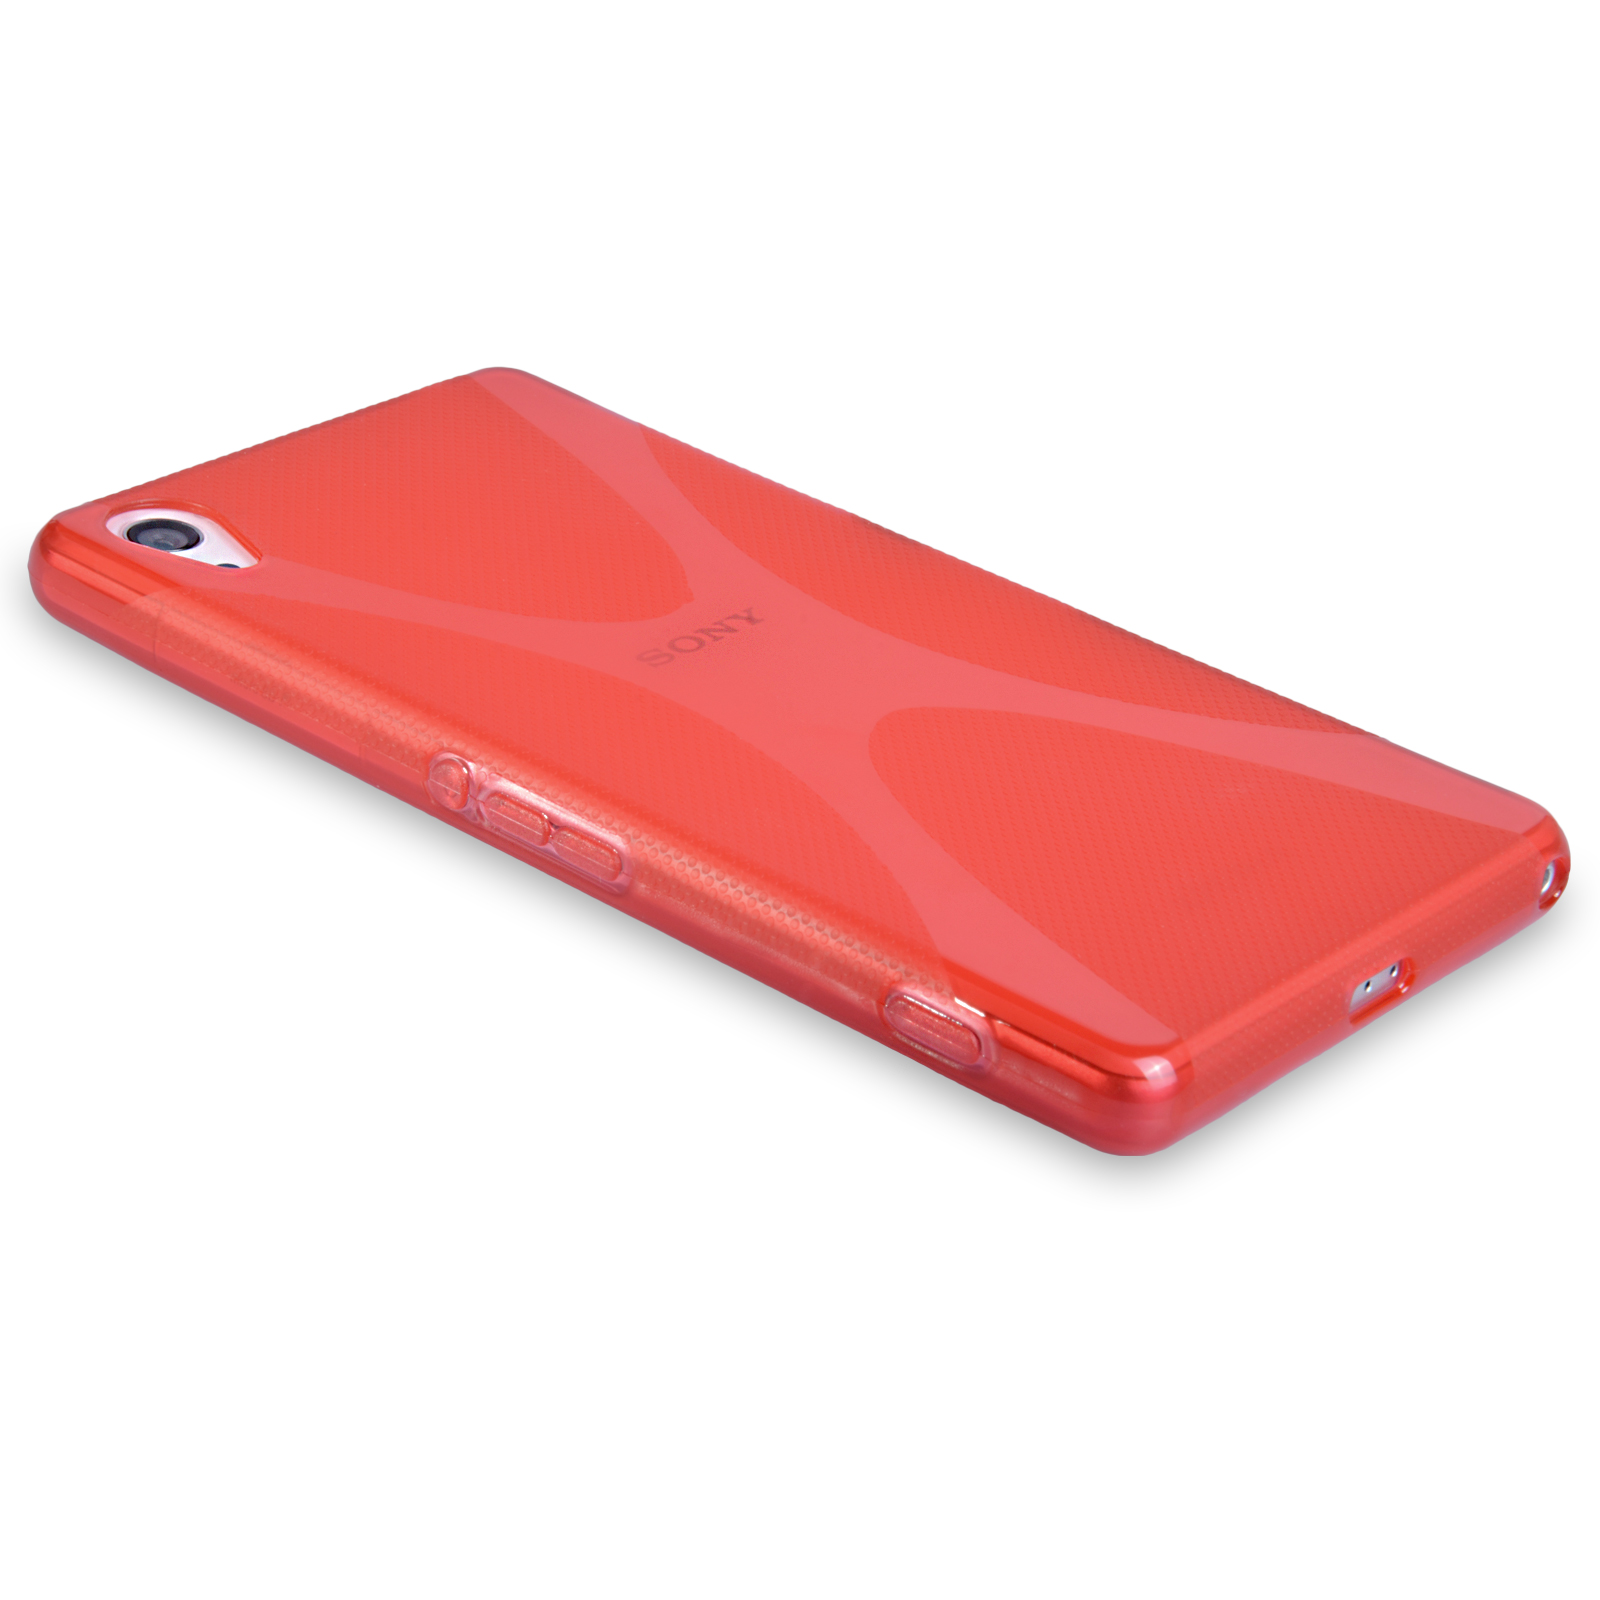 09c5eac1857e ... Yousave Accessories Sony Xperia Z2 Silicone Gel X-Line Case - Red ...